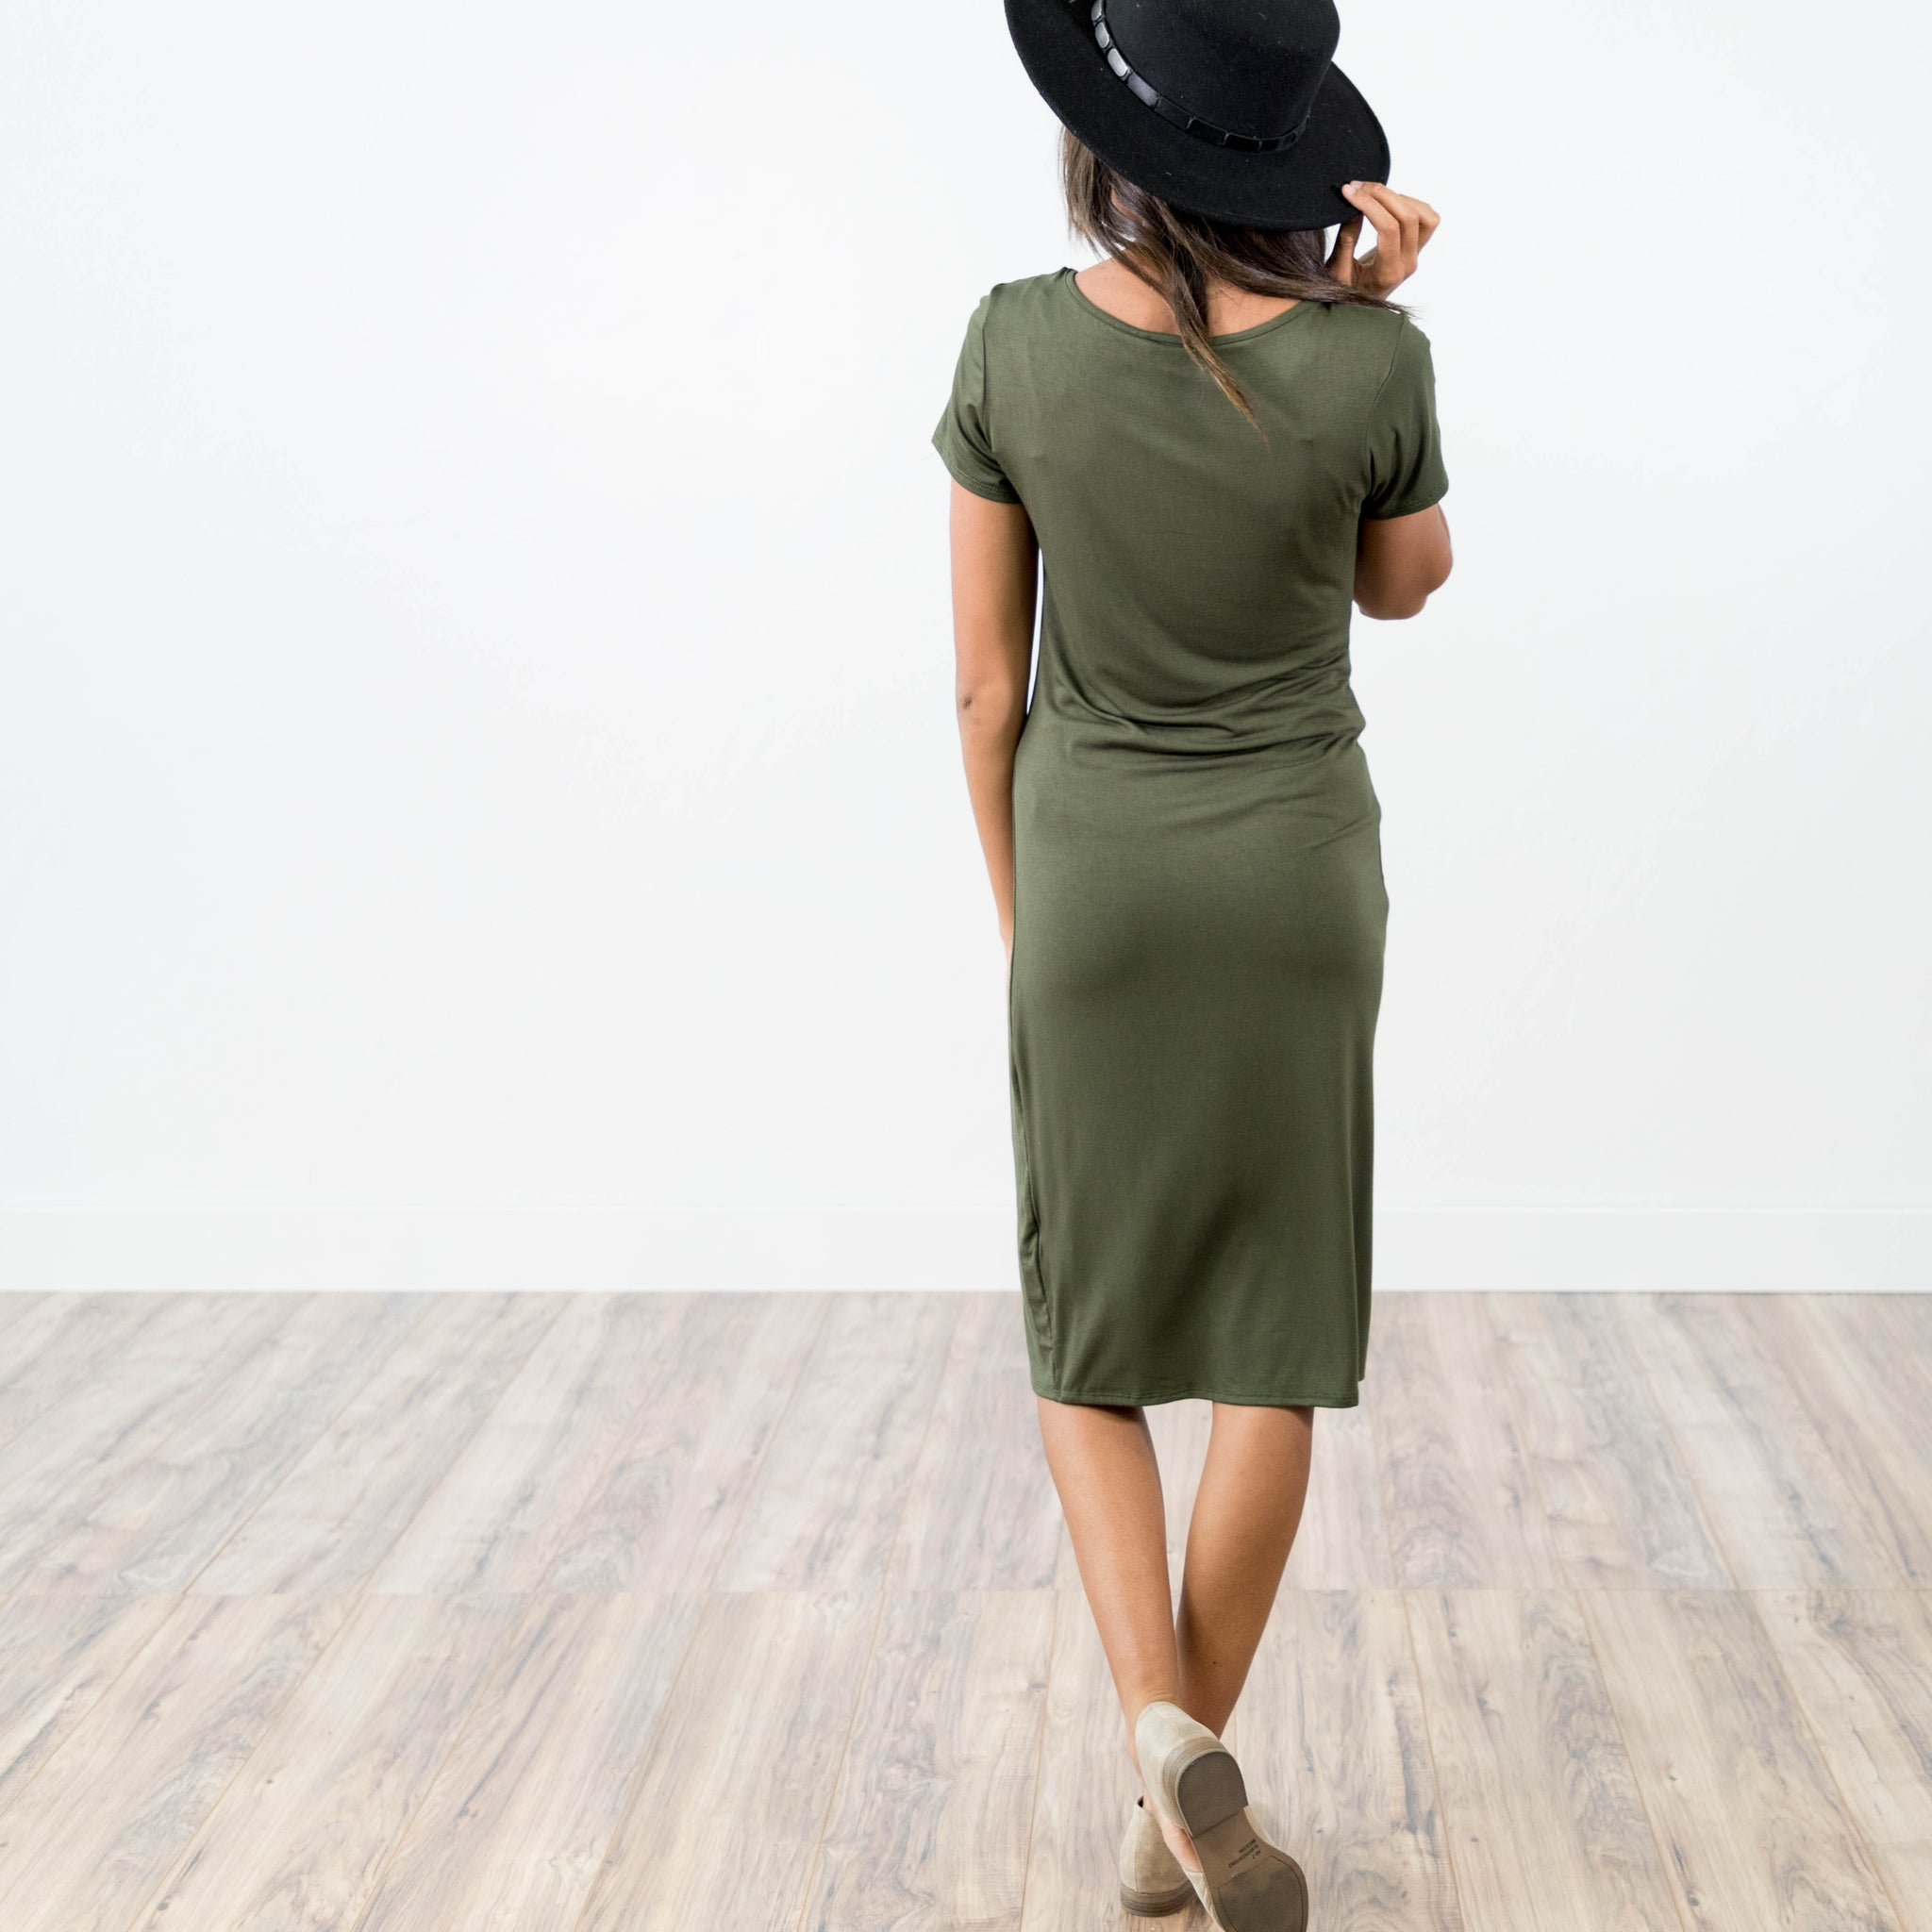 Brynne Dress in Dark Olive